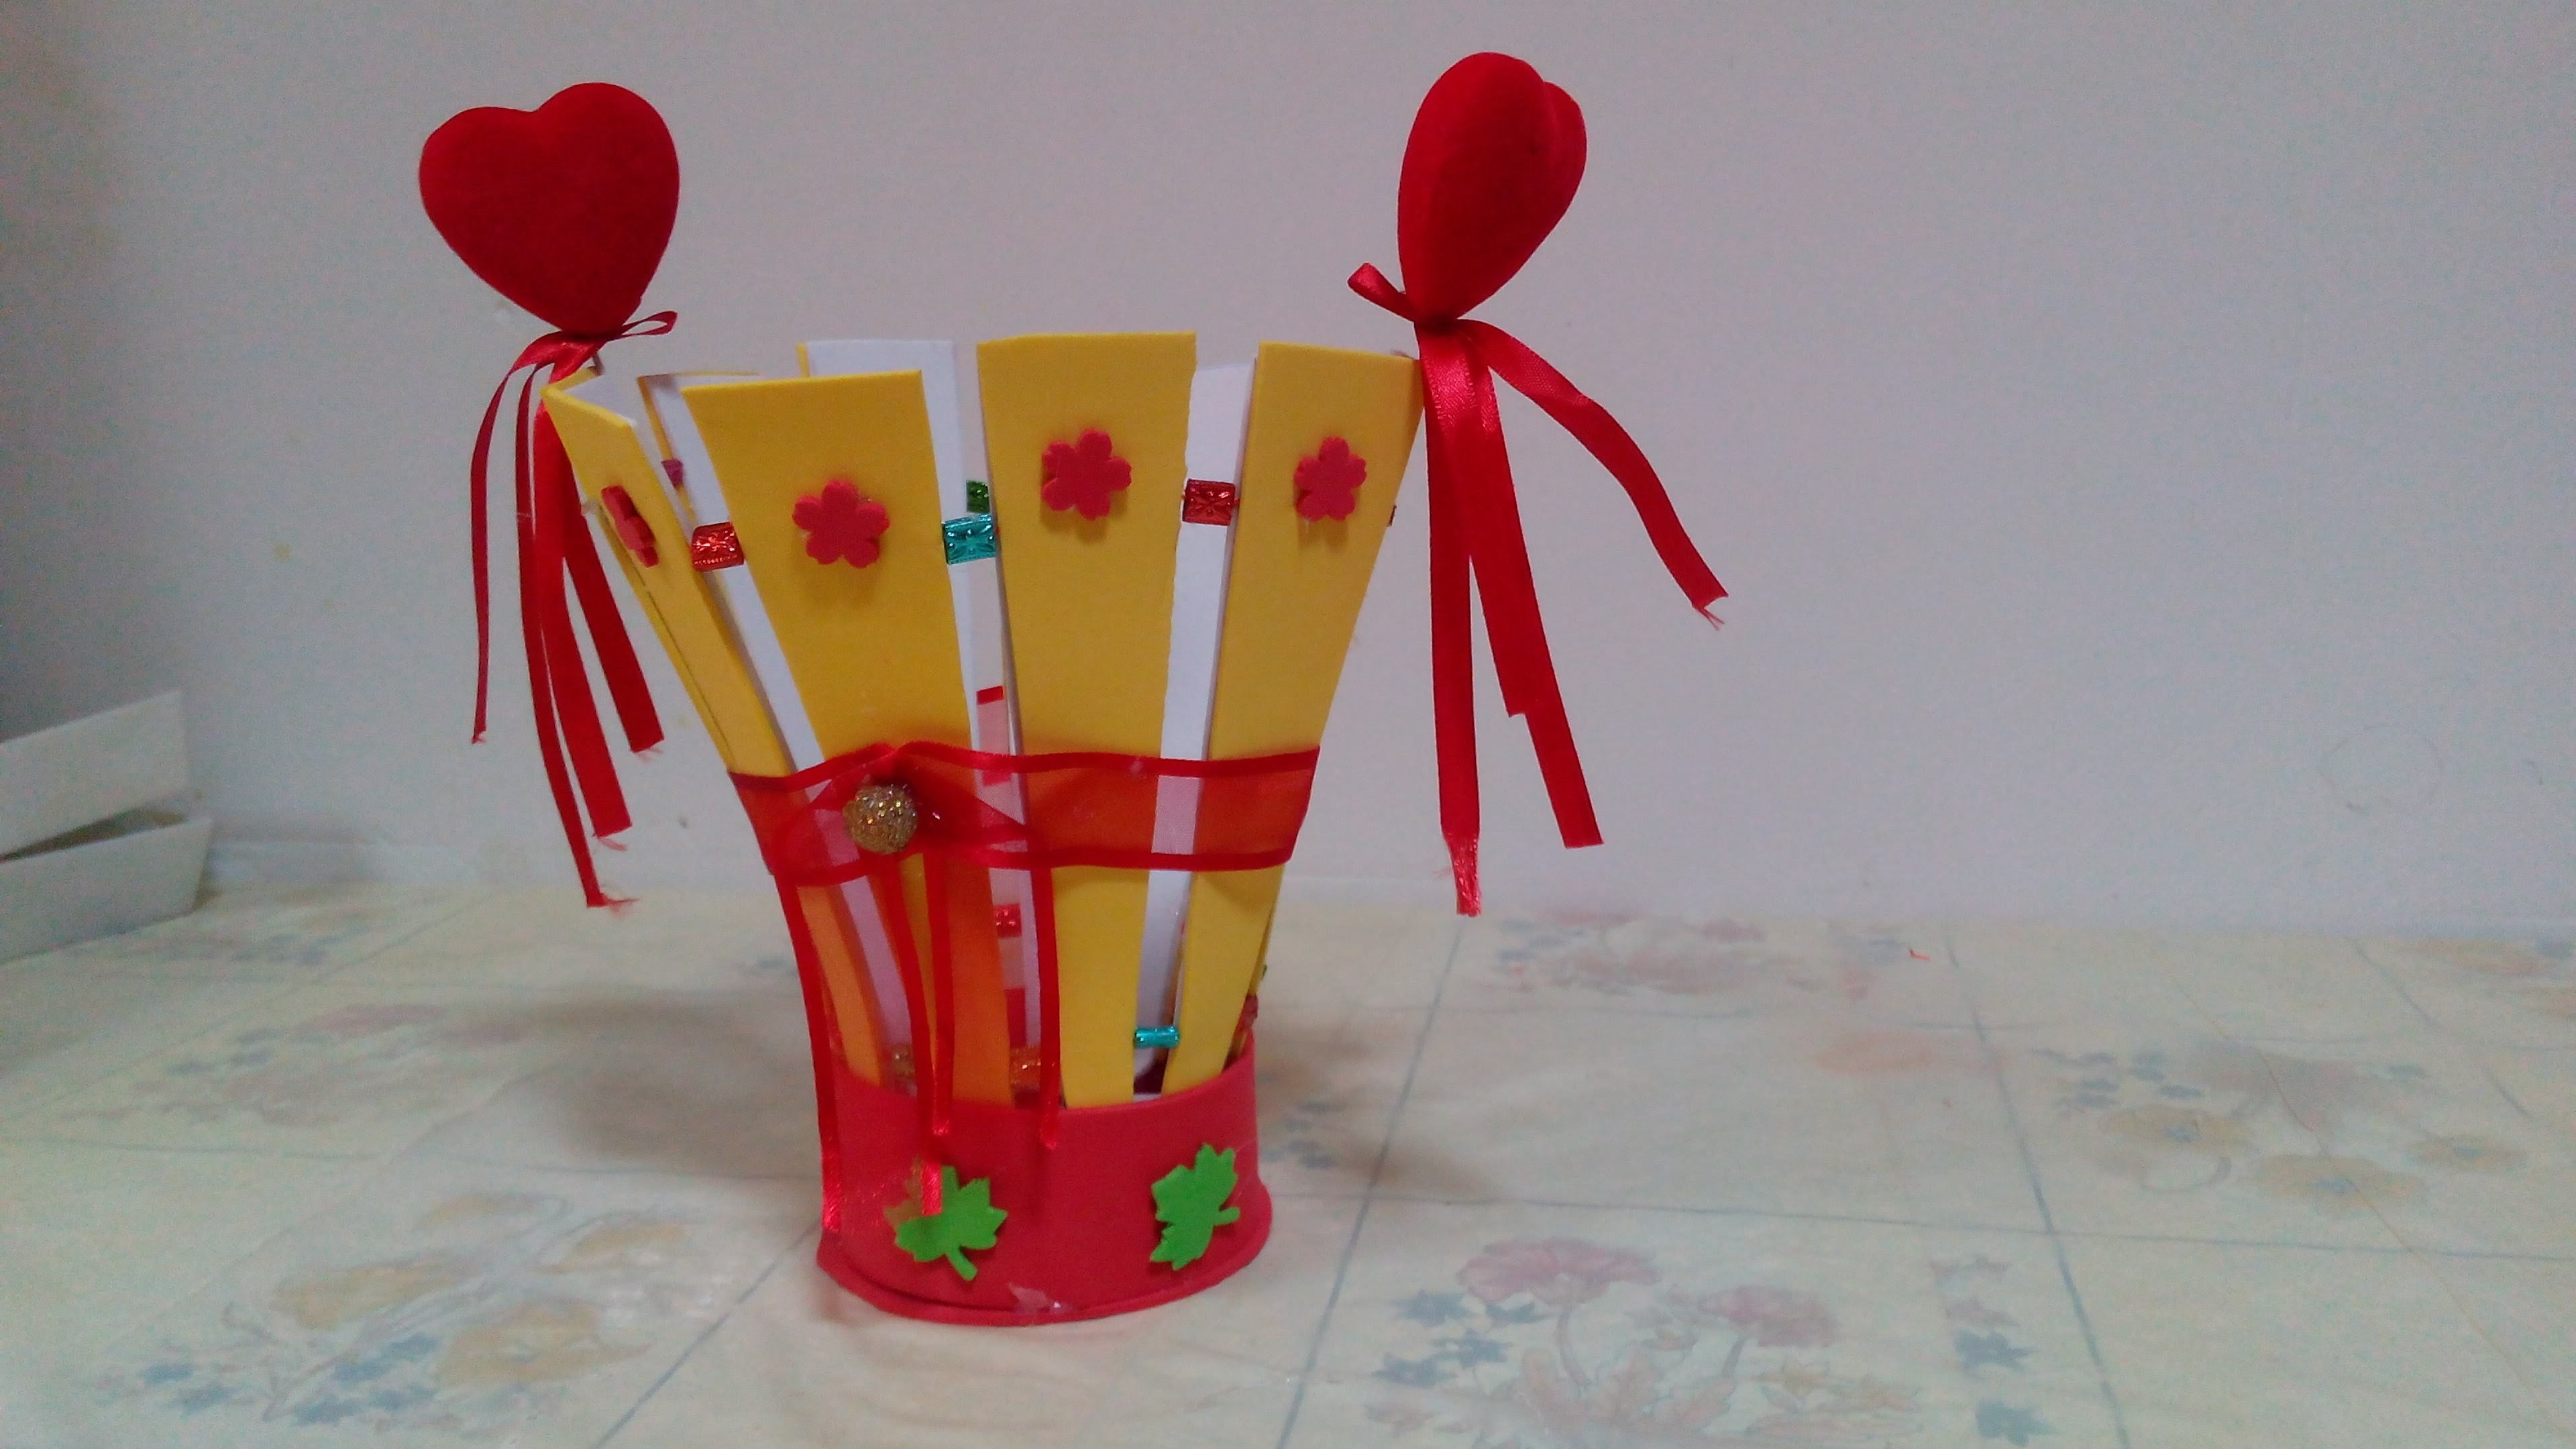 Noodle Christmas Tree Craft For Kids Handmade Card Idea Crafty pertaining to Handmade Crafts Ideas For Kids 29180